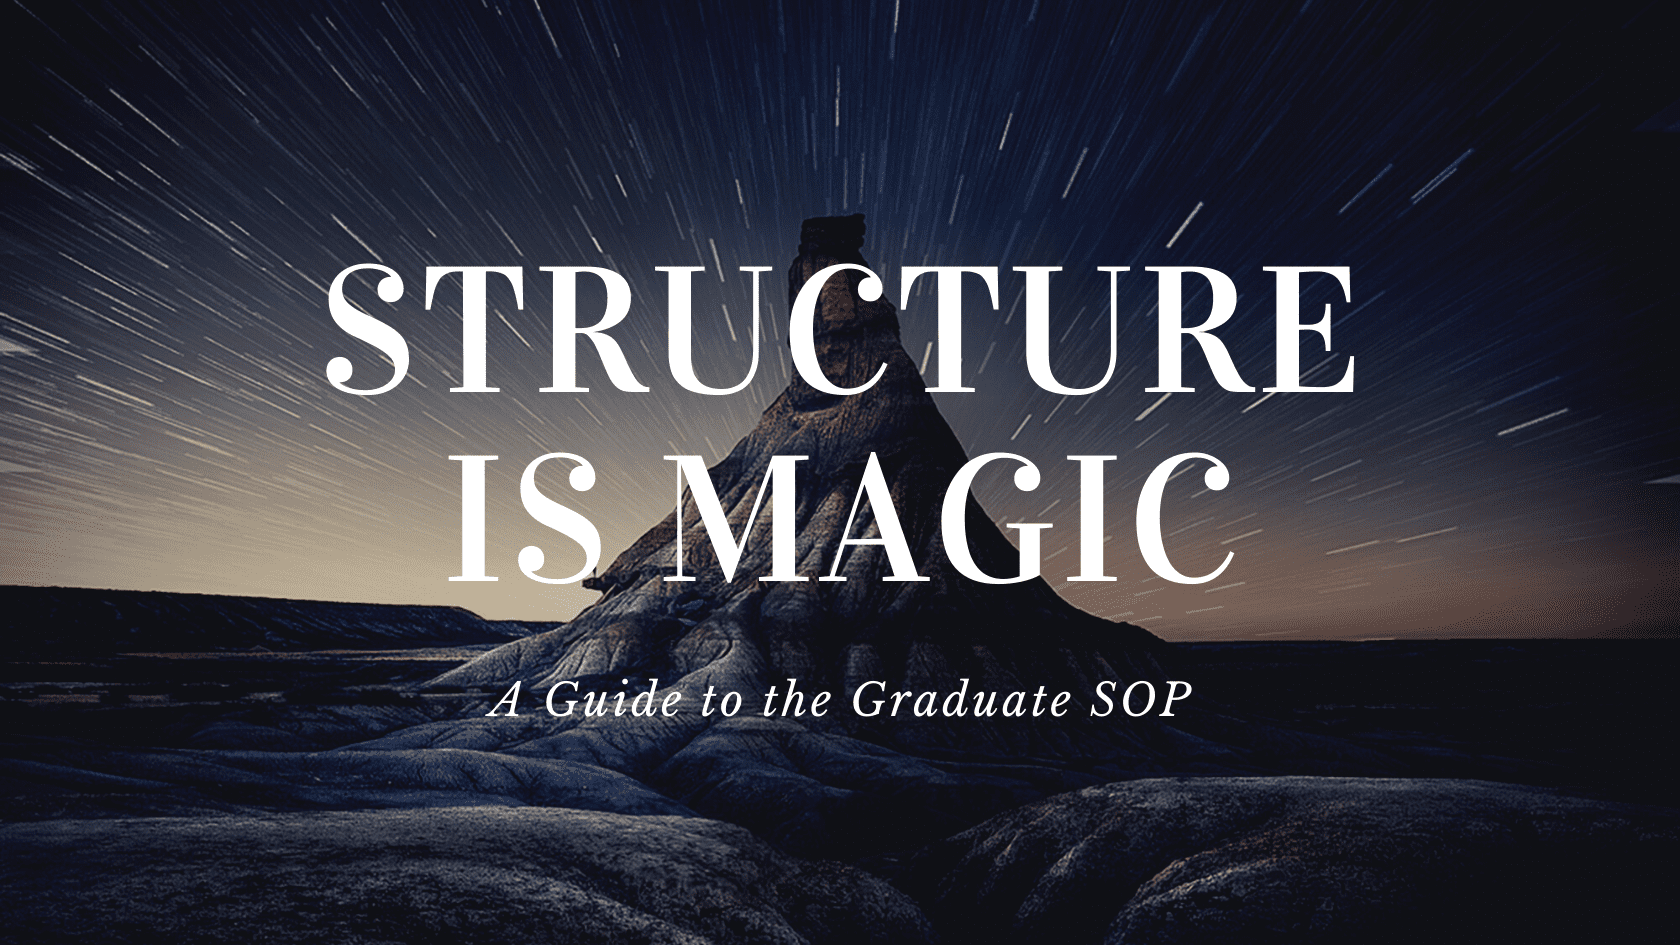 A Guide to the Graduate SOP